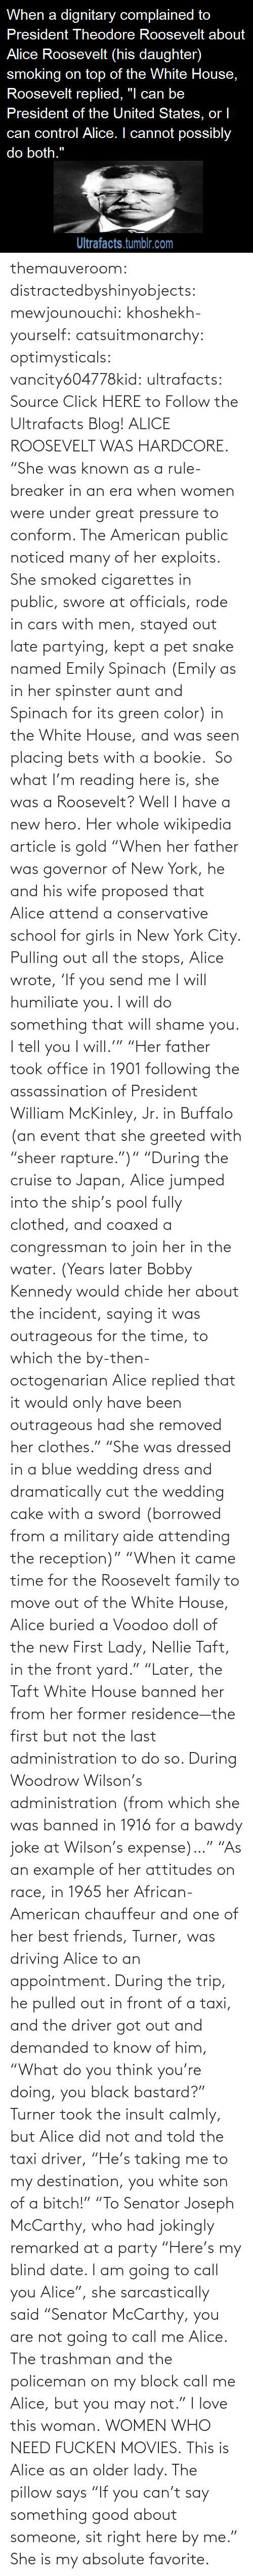 "Dress: themauveroom: distractedbyshinyobjects:  mewjounouchi:  khoshekh-yourself:  catsuitmonarchy:  optimysticals:  vancity604778kid:  ultrafacts:     Source Click HERE to Follow the Ultrafacts Blog!     ALICE ROOSEVELT WAS HARDCORE. ""She was known as a rule-breaker in an era when women were under great pressure to conform. The American public noticed many of her exploits. She smoked cigarettes in public, swore at officials, rode in cars with men, stayed out late partying, kept a pet snake named Emily Spinach (Emily as in her spinster aunt and Spinach for its green color) in the White House, and was seen placing bets with a bookie.    So what I'm reading here is, she was a Roosevelt?  Well I have a new hero.  Her whole wikipedia article is gold ""When her father was governor of New York, he and his wife proposed that Alice attend a conservative school for girls in New York City. Pulling out all the stops, Alice wrote, 'If you send me I will humiliate you. I will do something that will shame you. I tell you I will.'"" ""Her father took office in 1901 following the assassination of President William McKinley, Jr. in Buffalo (an event that she greeted with ""sheer rapture."")"" ""During the cruise to Japan, Alice jumped into the ship's pool fully clothed, and coaxed a congressman to join her in the water. (Years later Bobby Kennedy would chide her about the incident, saying it was outrageous for the time, to which the by-then-octogenarian Alice replied that it would only have been outrageous had she removed her clothes."" ""She was dressed in a blue wedding dress and dramatically cut the wedding cake with a sword (borrowed from a military aide attending the reception)"" ""When it came time for the Roosevelt family to move out of the White House, Alice buried a Voodoo doll of the new First Lady, Nellie Taft, in the front yard."" ""Later, the Taft White House banned her from her former residence—the first but not the last administration to do so. During Woodrow Wilson's administration (from which she was banned in 1916 for a bawdy joke at Wilson's expense)…"" ""As an example of her attitudes on race, in 1965 her African-American chauffeur and one of her best friends, Turner, was driving Alice to an appointment. During the trip, he pulled out in front of a taxi, and the driver got out and demanded to know of him, ""What do you think you're doing, you black bastard?"" Turner took the insult calmly, but Alice did not and told the taxi driver, ""He's taking me to my destination, you white son of a bitch!"" ""To Senator Joseph McCarthy, who had jokingly remarked at a party ""Here's my blind date. I am going to call you Alice"", she sarcastically said ""Senator McCarthy, you are not going to call me Alice. The trashman and the policeman on my block call me Alice, but you may not.""  I love this woman.  WOMEN WHO NEED FUCKEN MOVIES.   This is Alice as an older lady. The pillow says ""If you can't say something good about someone, sit right here by me.""  She is my absolute favorite."